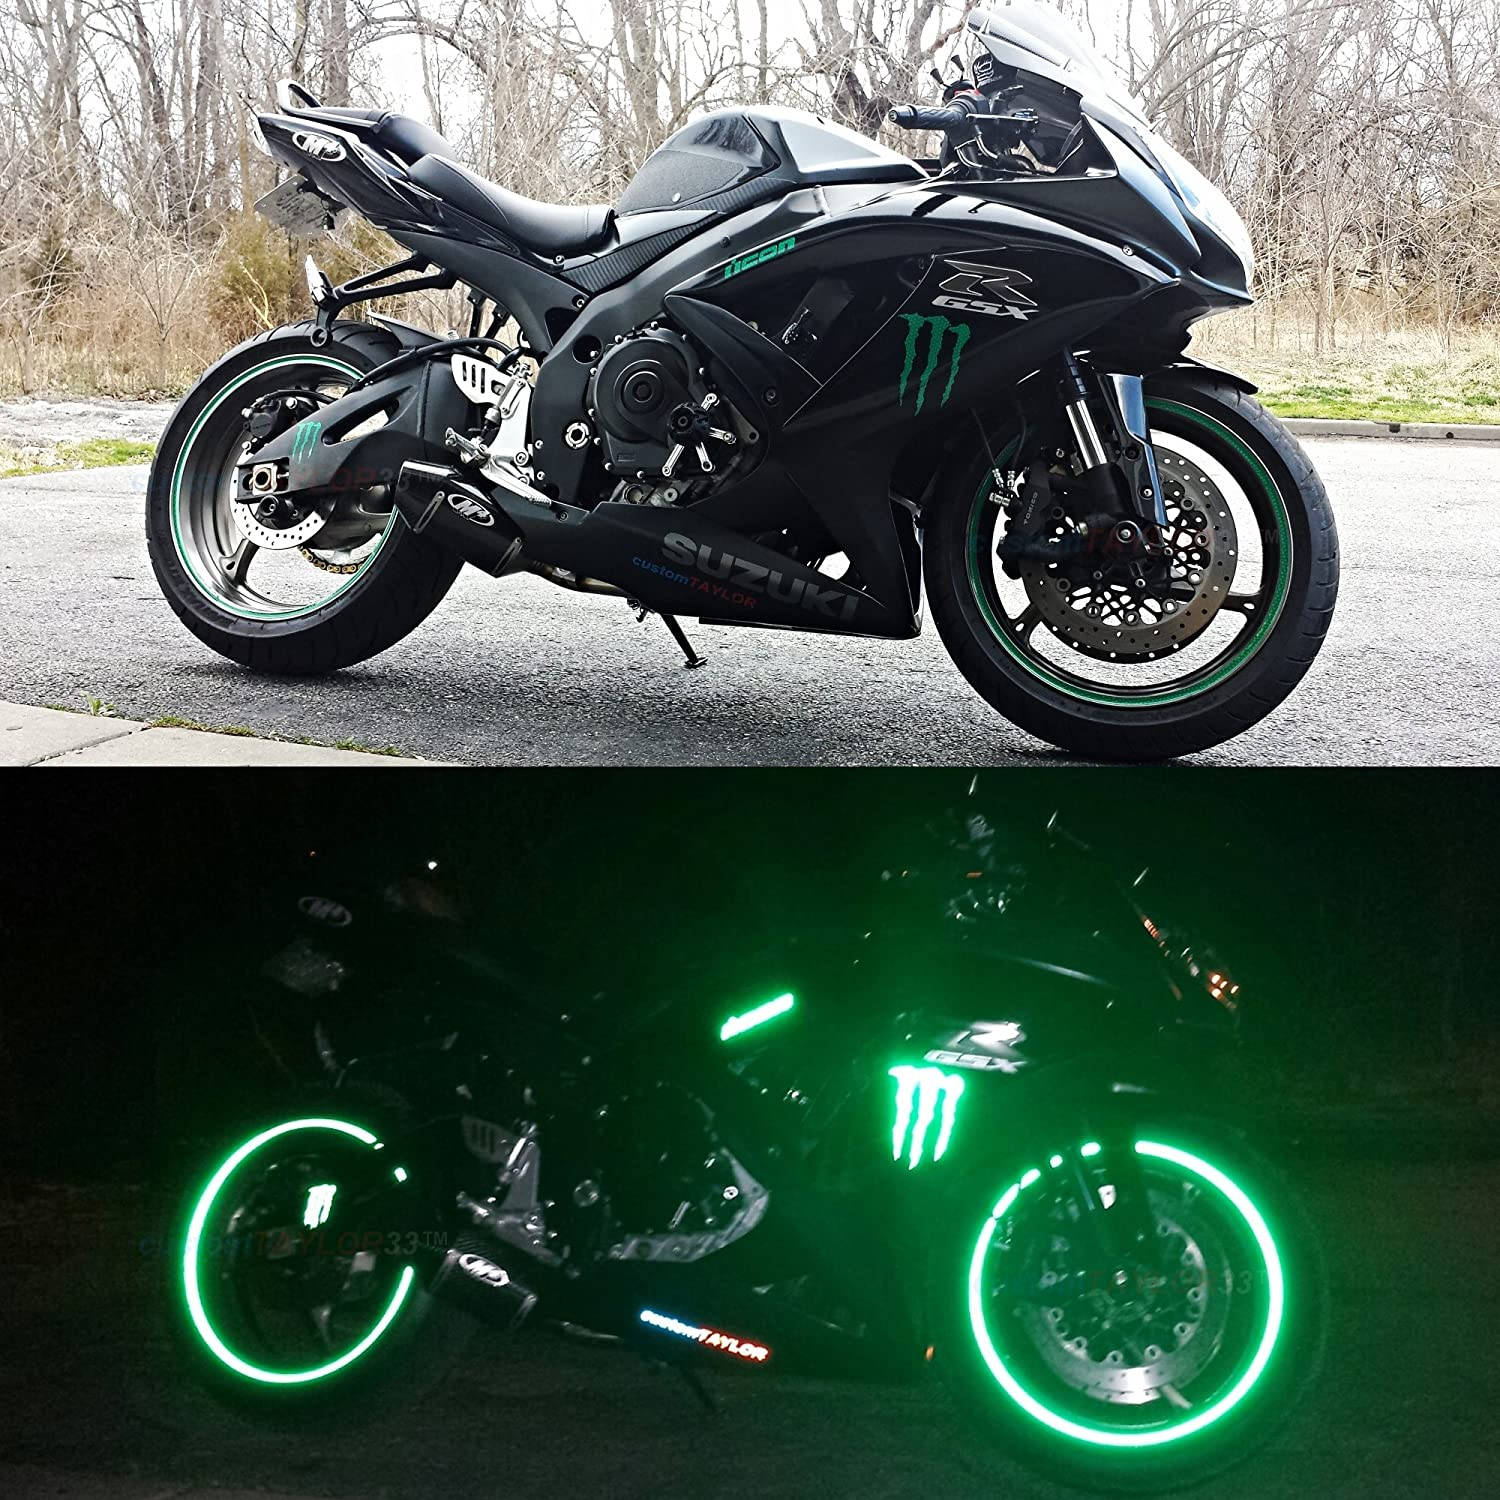 Must Select Your Rim Size 10 Rim Size All Vehicles Green High Intensity Grade Reflective Copyrighted Safety Rim Tapes customTAYLOR33